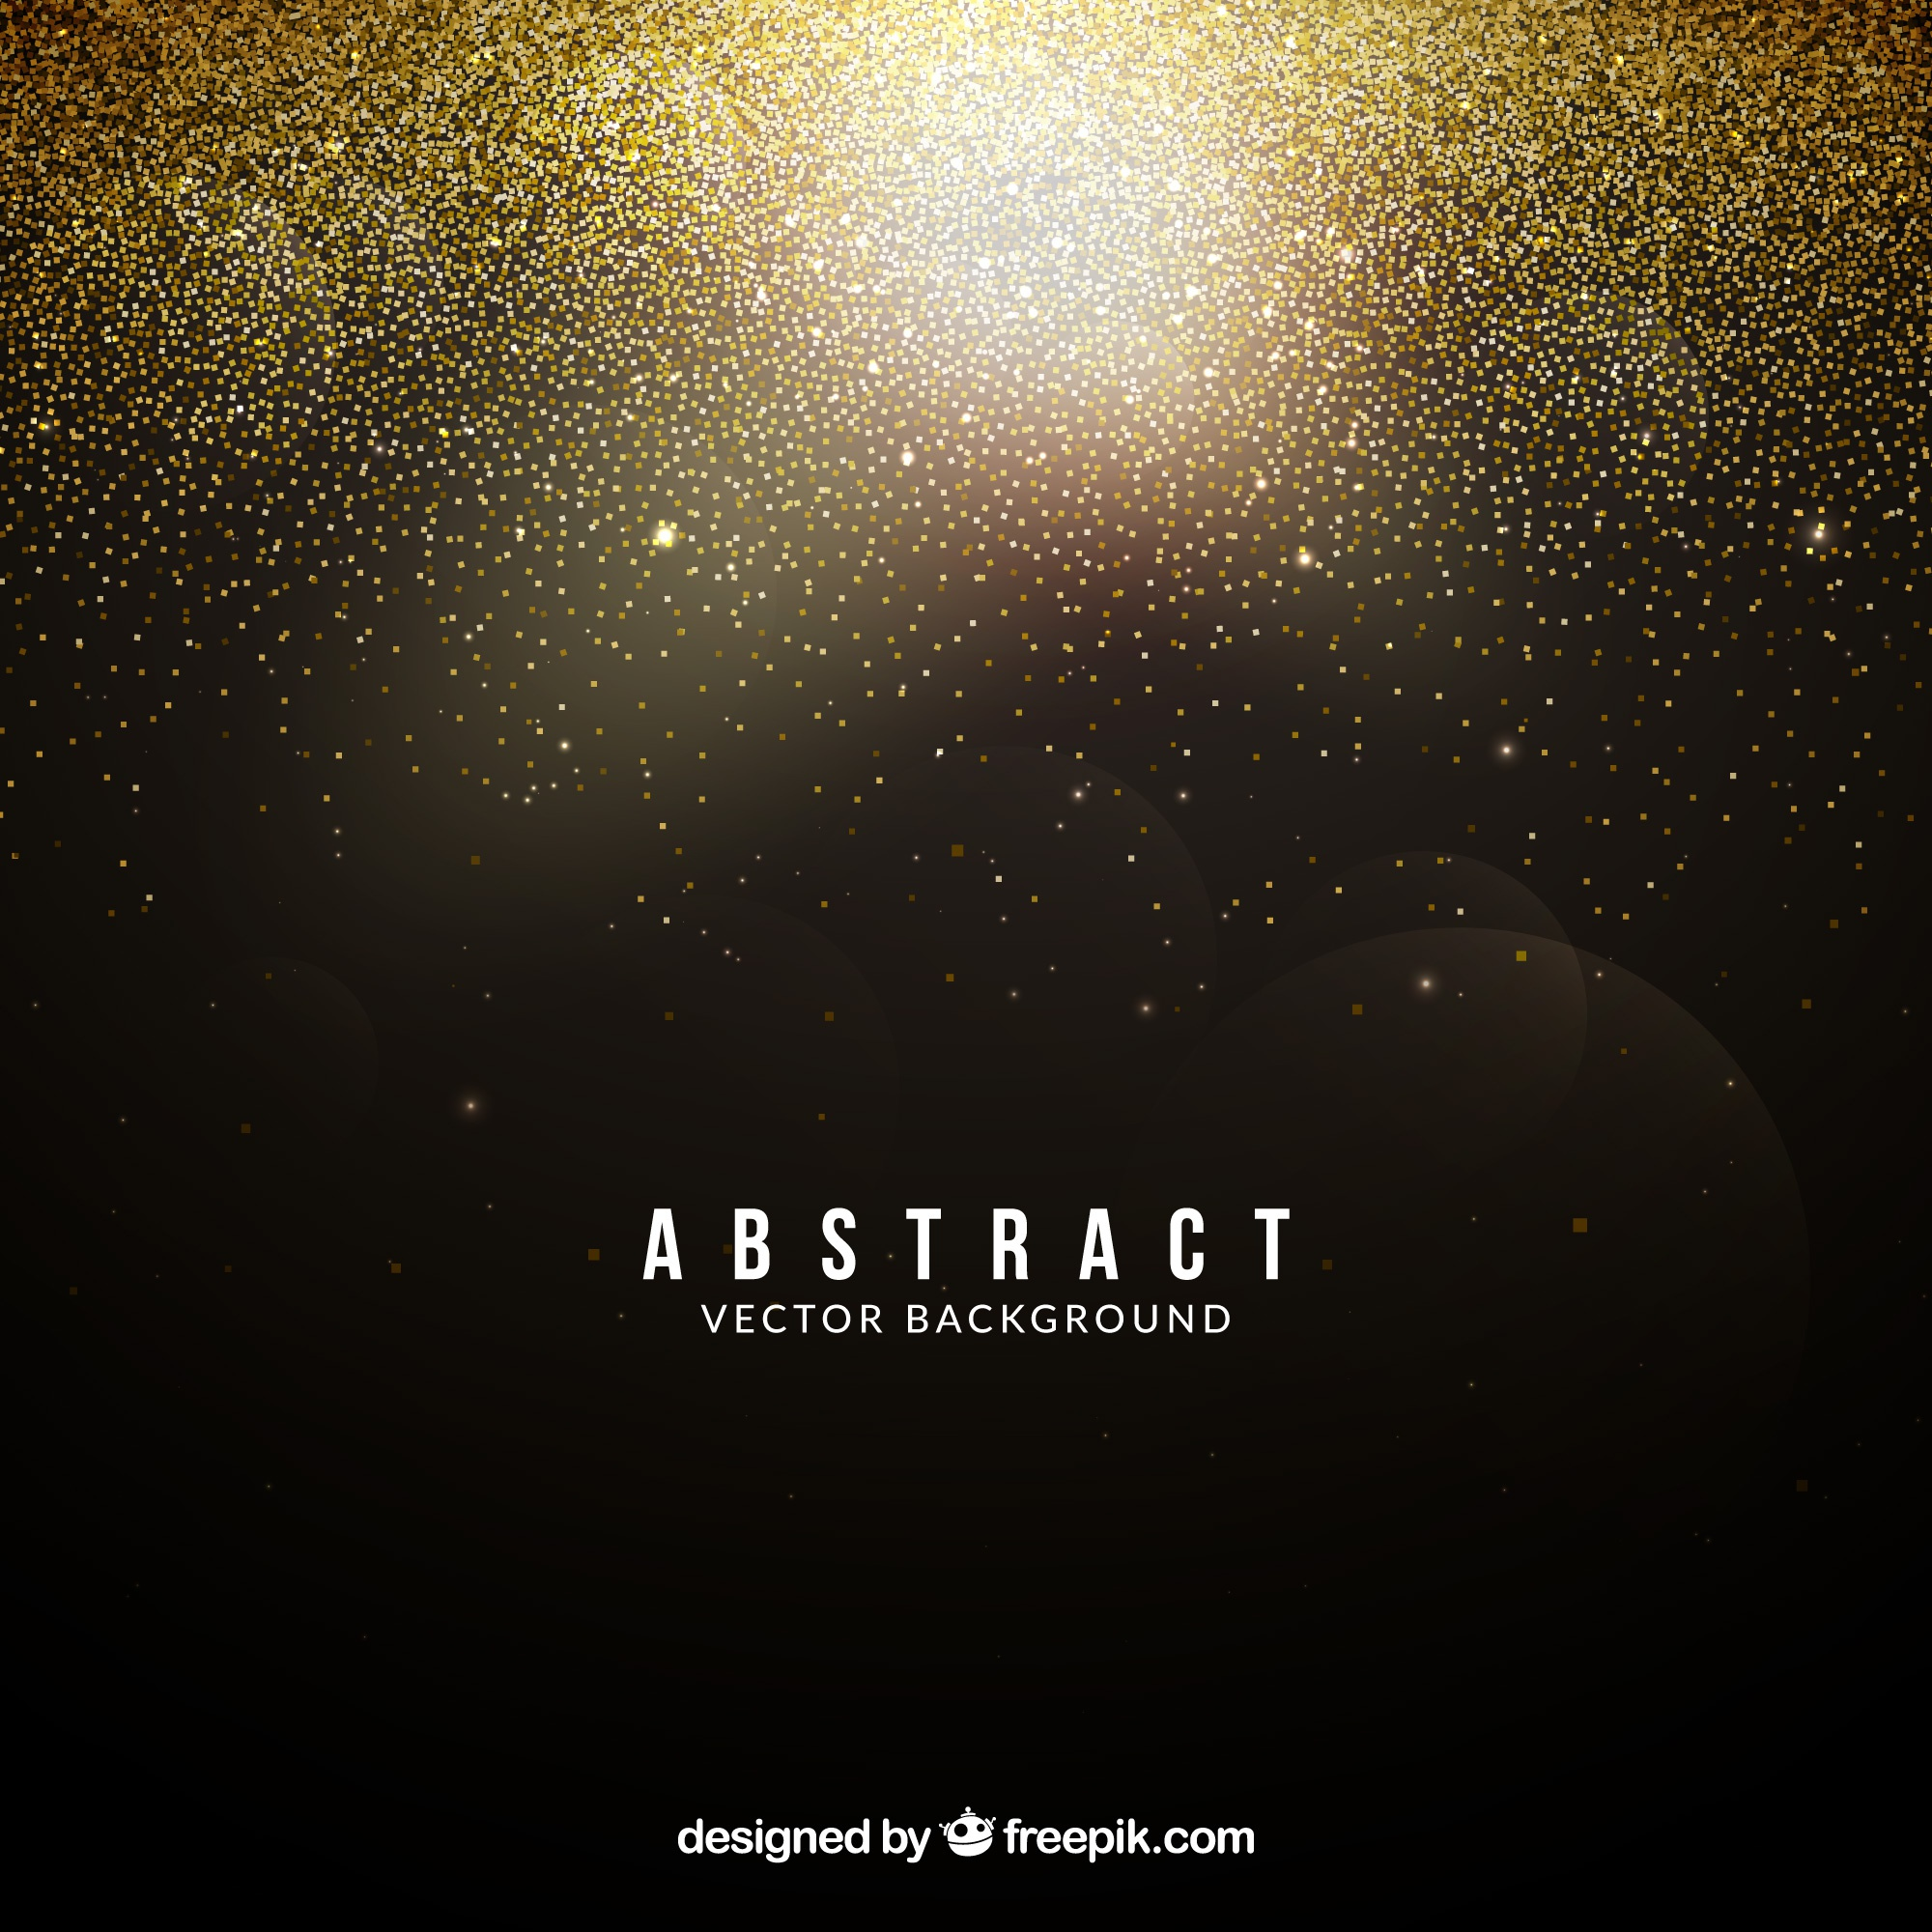 Elegant background with abstract style